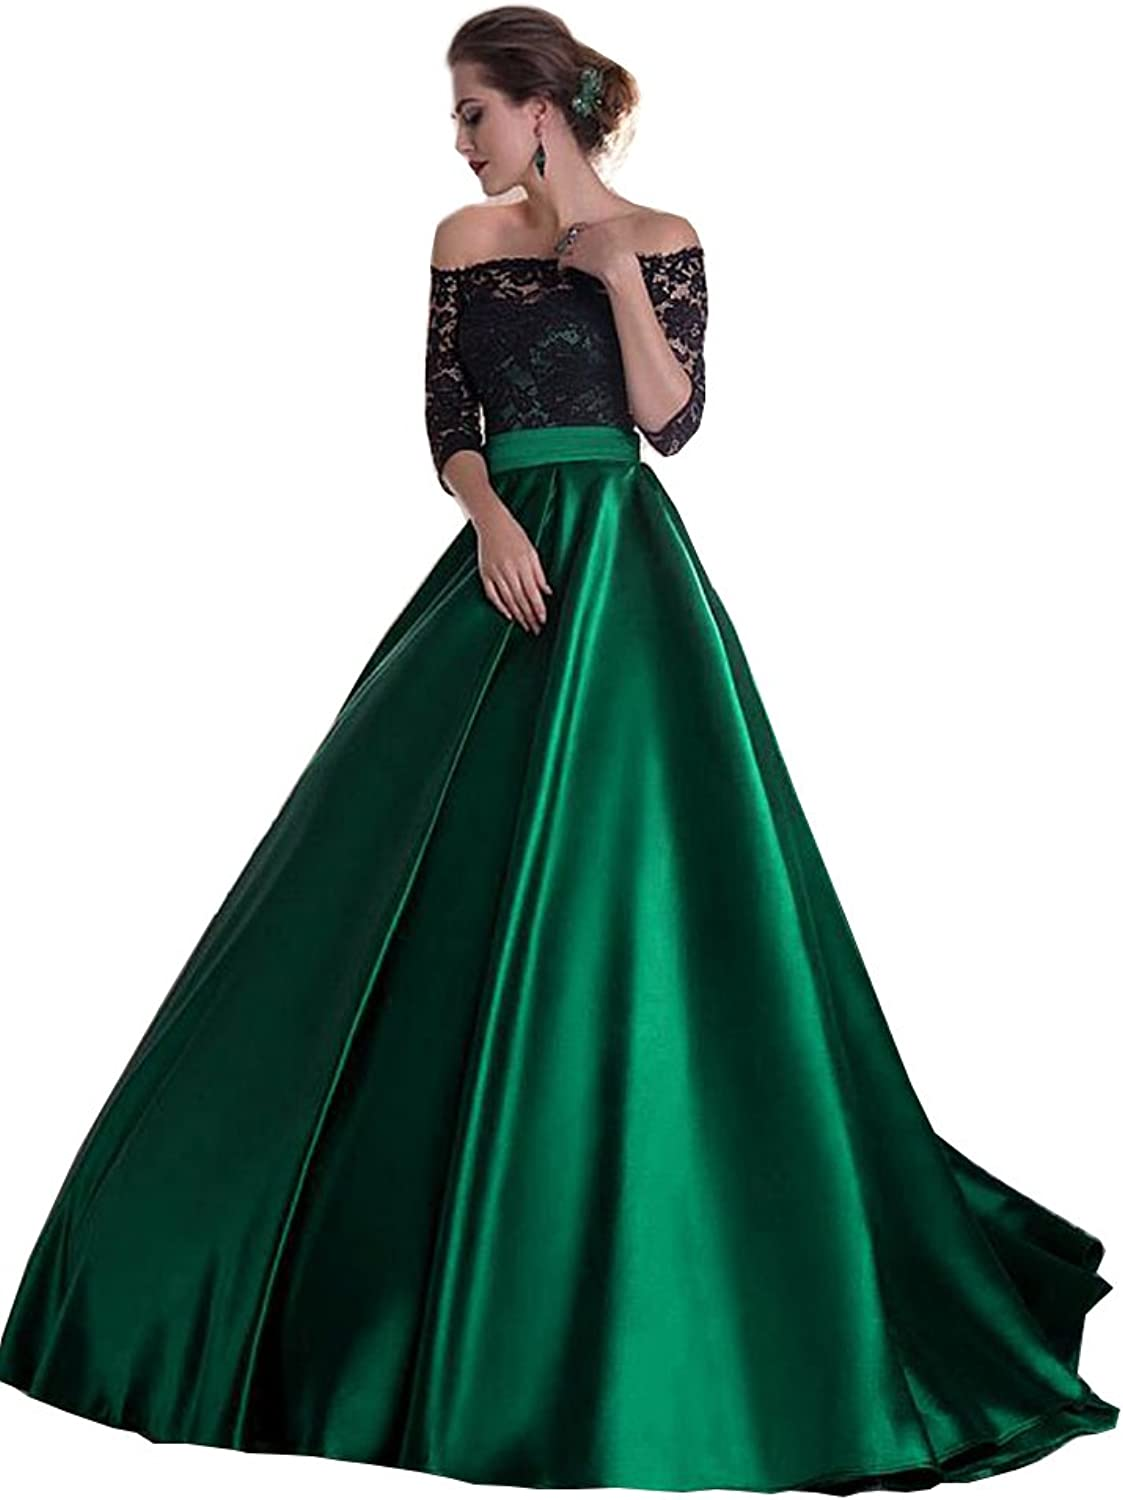 Chenghouse Satin Prom Dresses Off The Shoulder Half Sleevs Lace Prom Gowns